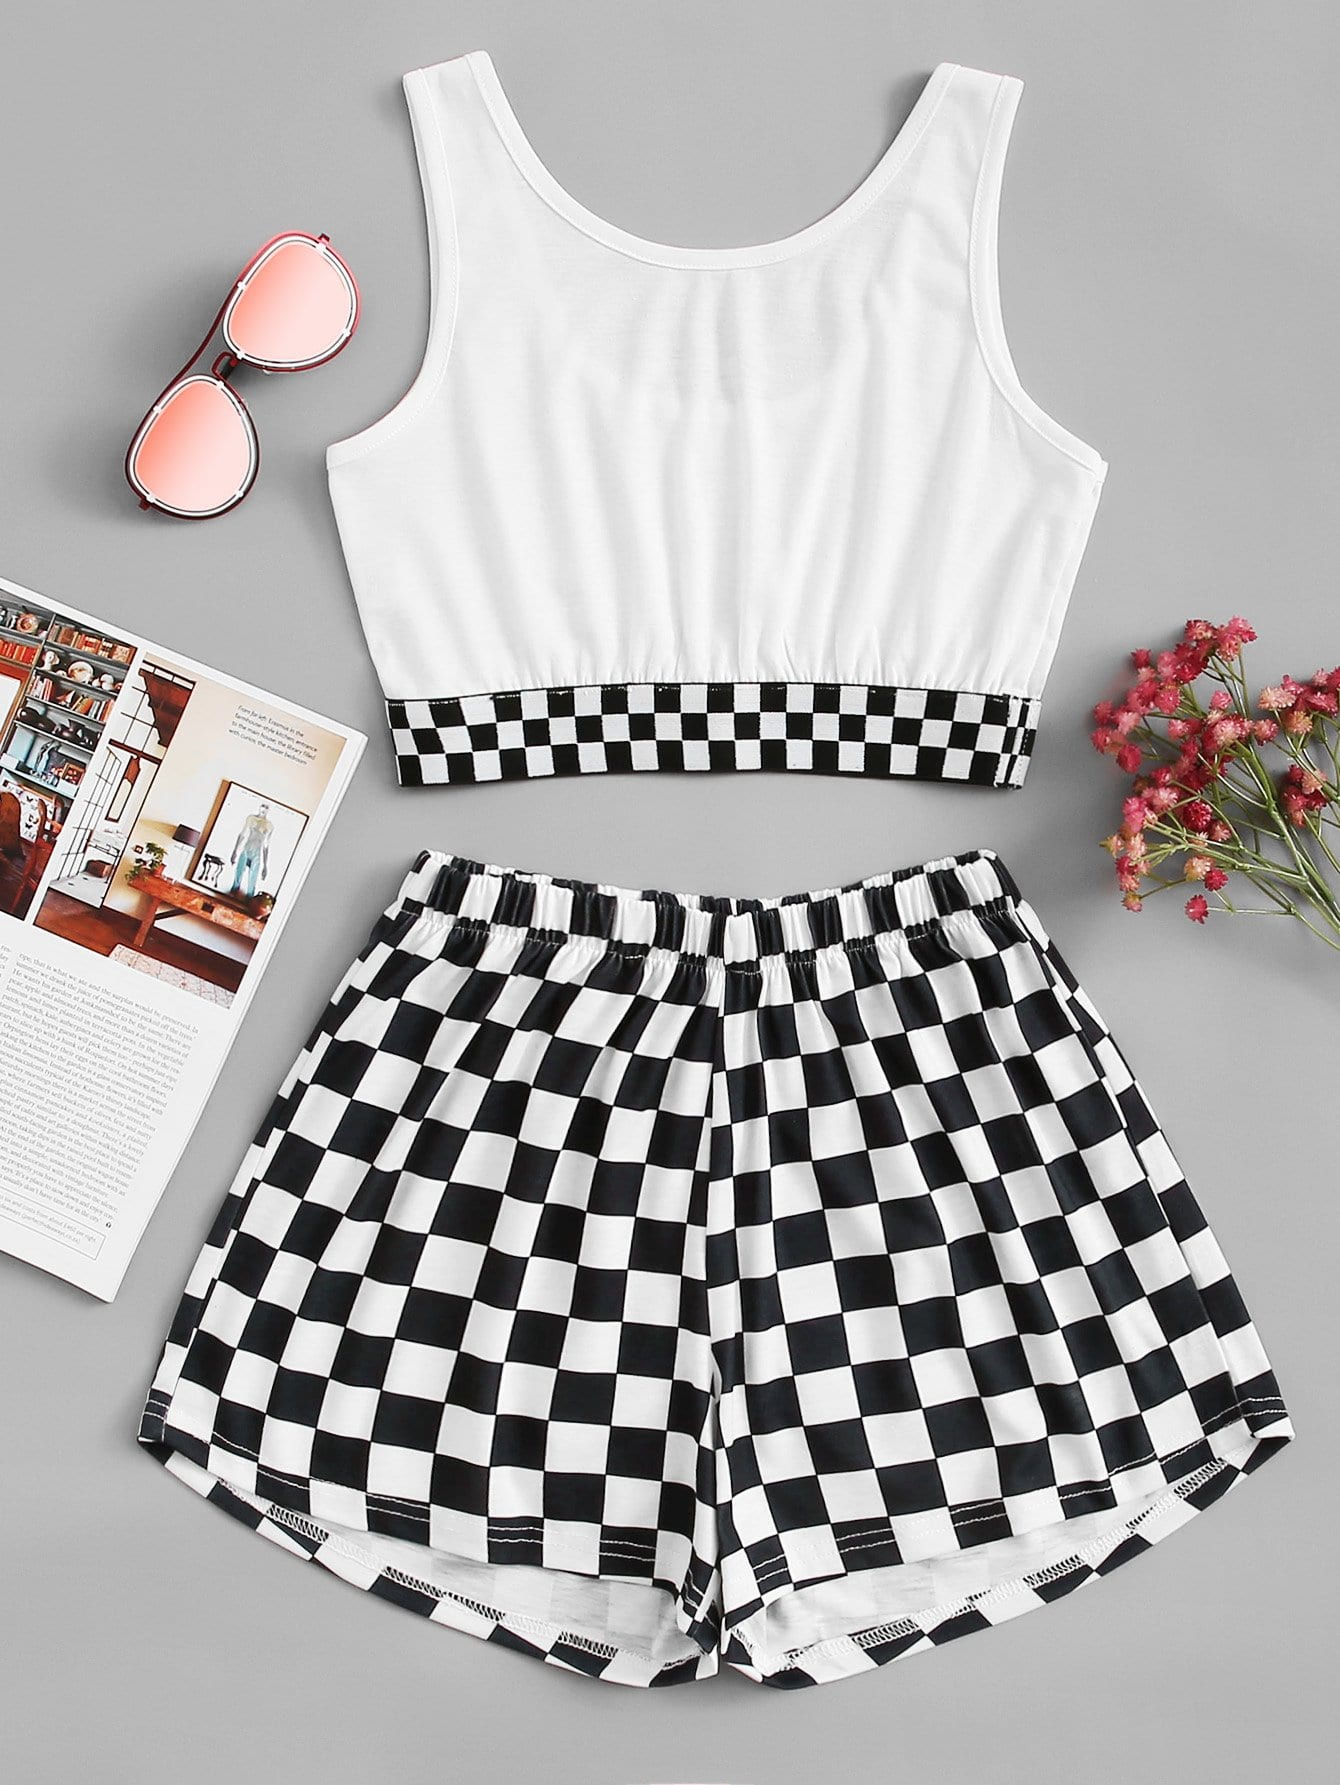 Gingham Crop Top With Shorts black choker sleeveless crop top